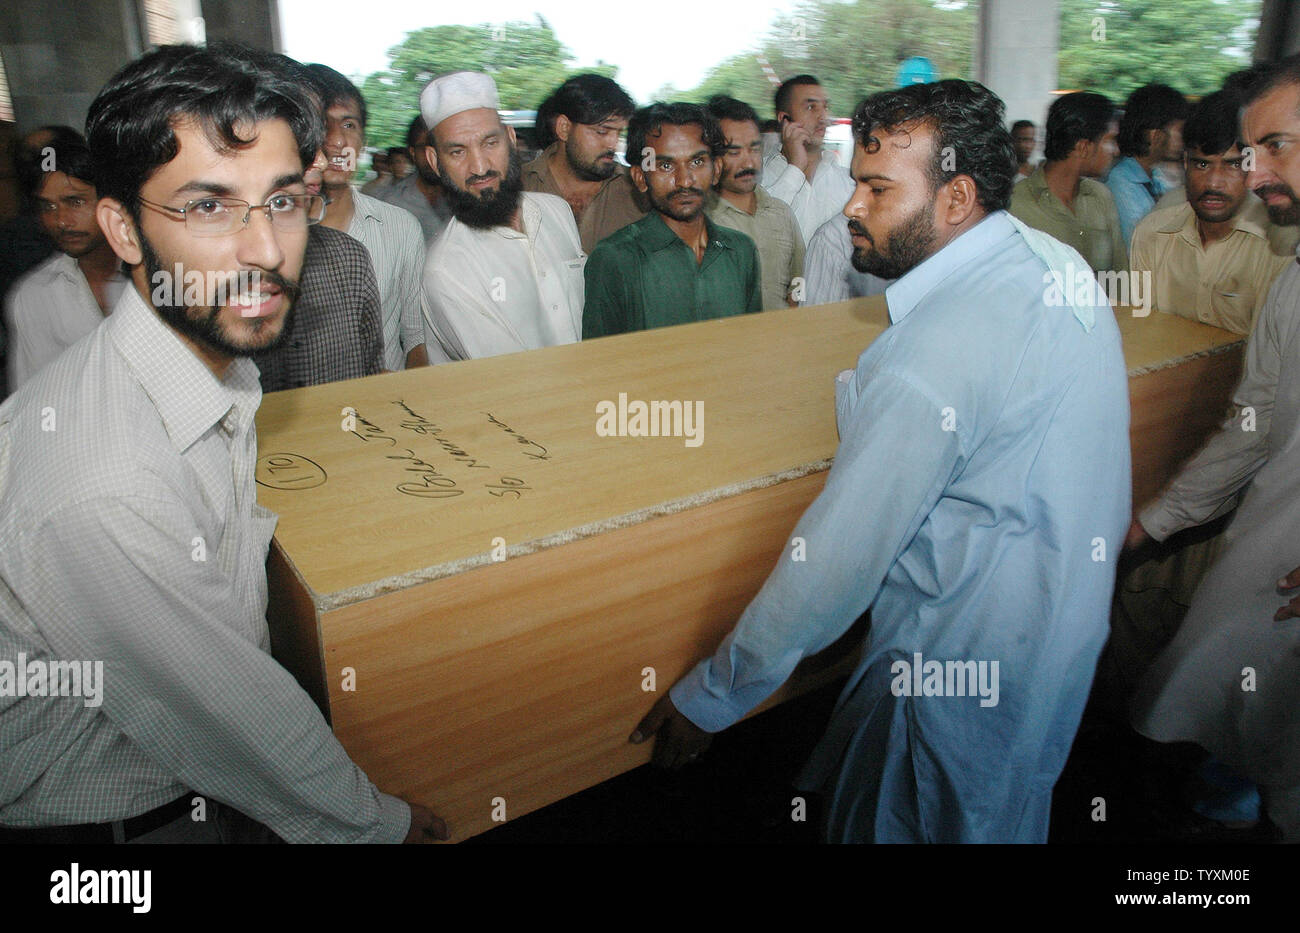 Pakistani relatives and officials lift a coffin carrying a plane crash victim's remains transported from PIMS hospital  to Islamabad airport on July 29, 2010. Pakistan observed a day of mourning for the 152 people killed in its worst aviation disaster July 28, as a monsoon deluge delayed the search for the aircraft's black box in hilly woodland.  UPI/Sajjad Ali Qureshi - Stock Image